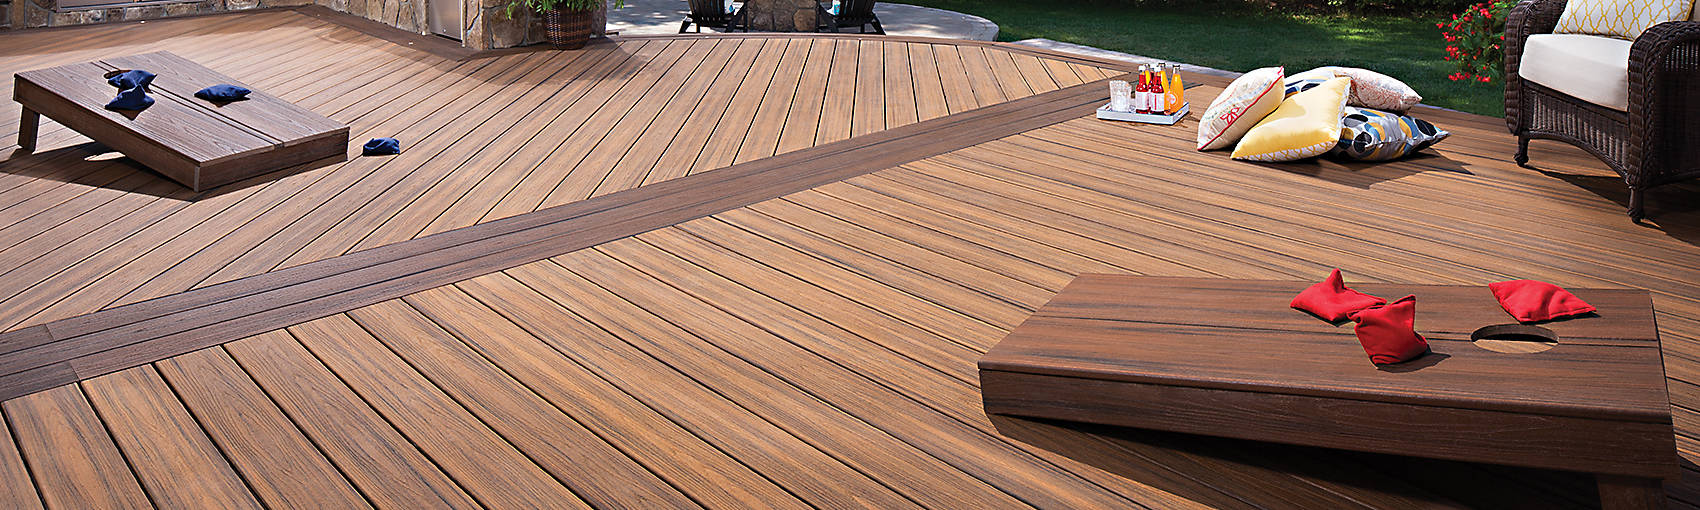 composite decking wpc wood alternative decking trex 1700x510